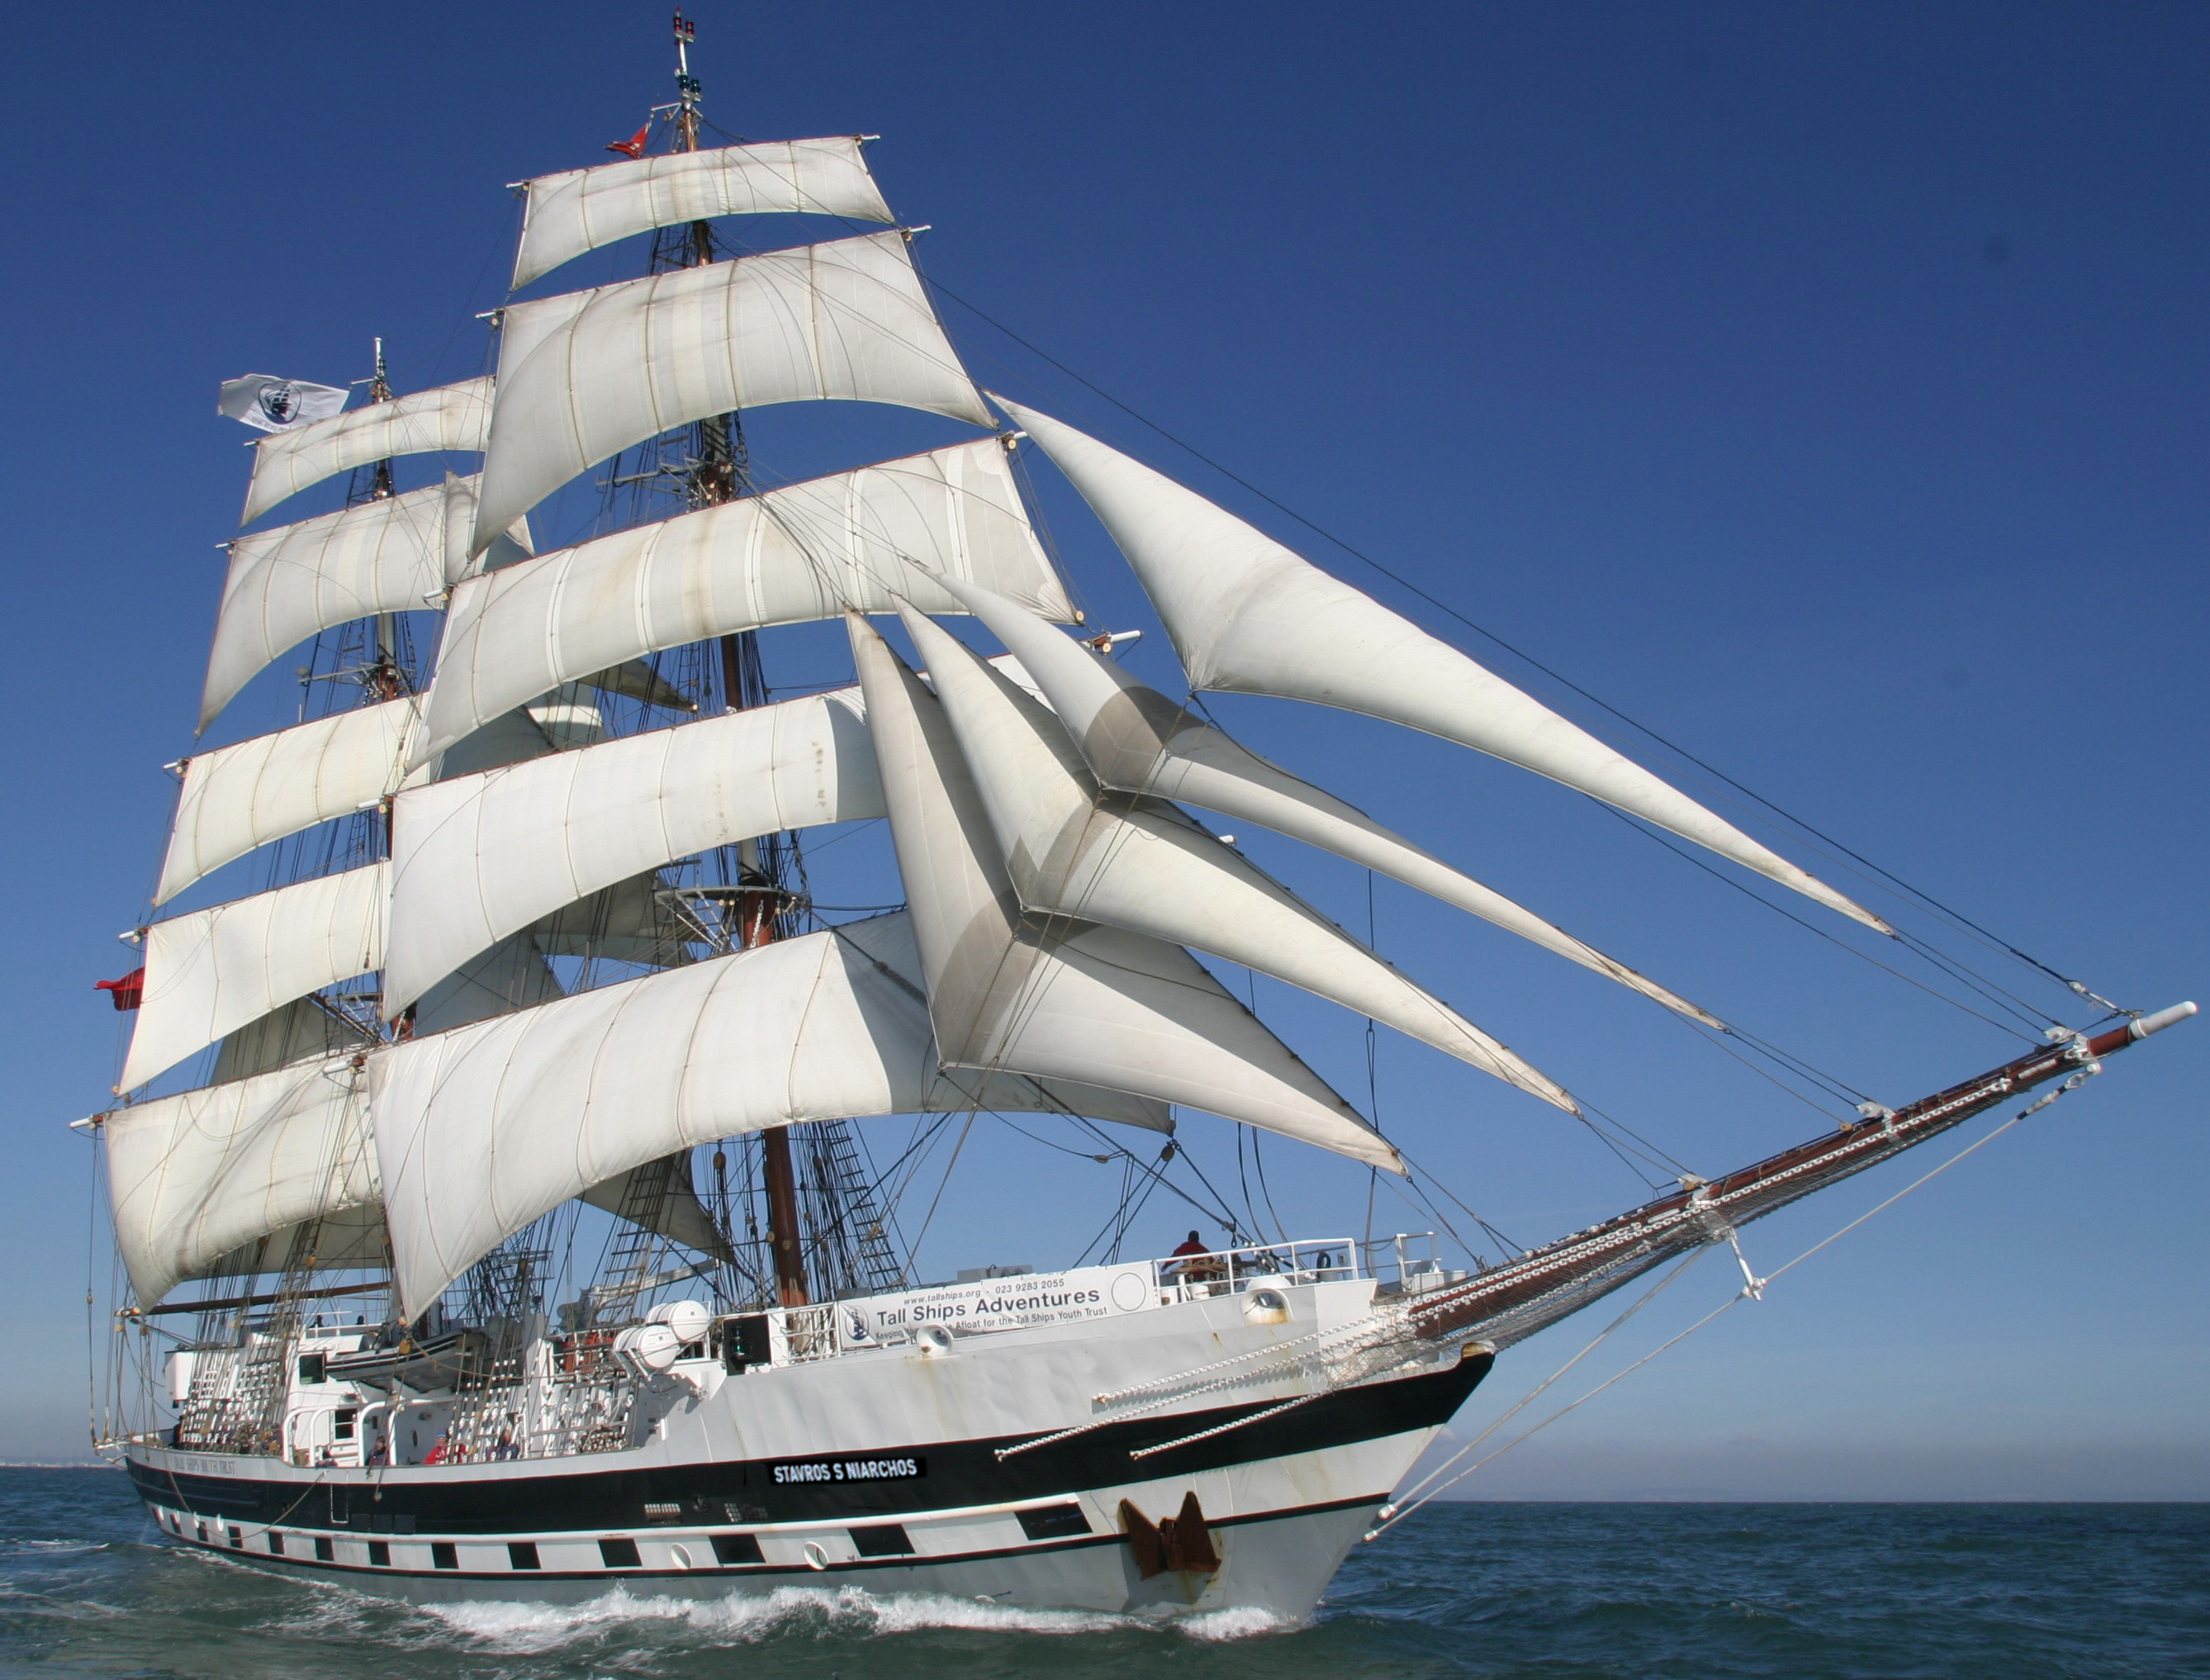 The tall ship- Stavros S Niarchos with white sails on the water